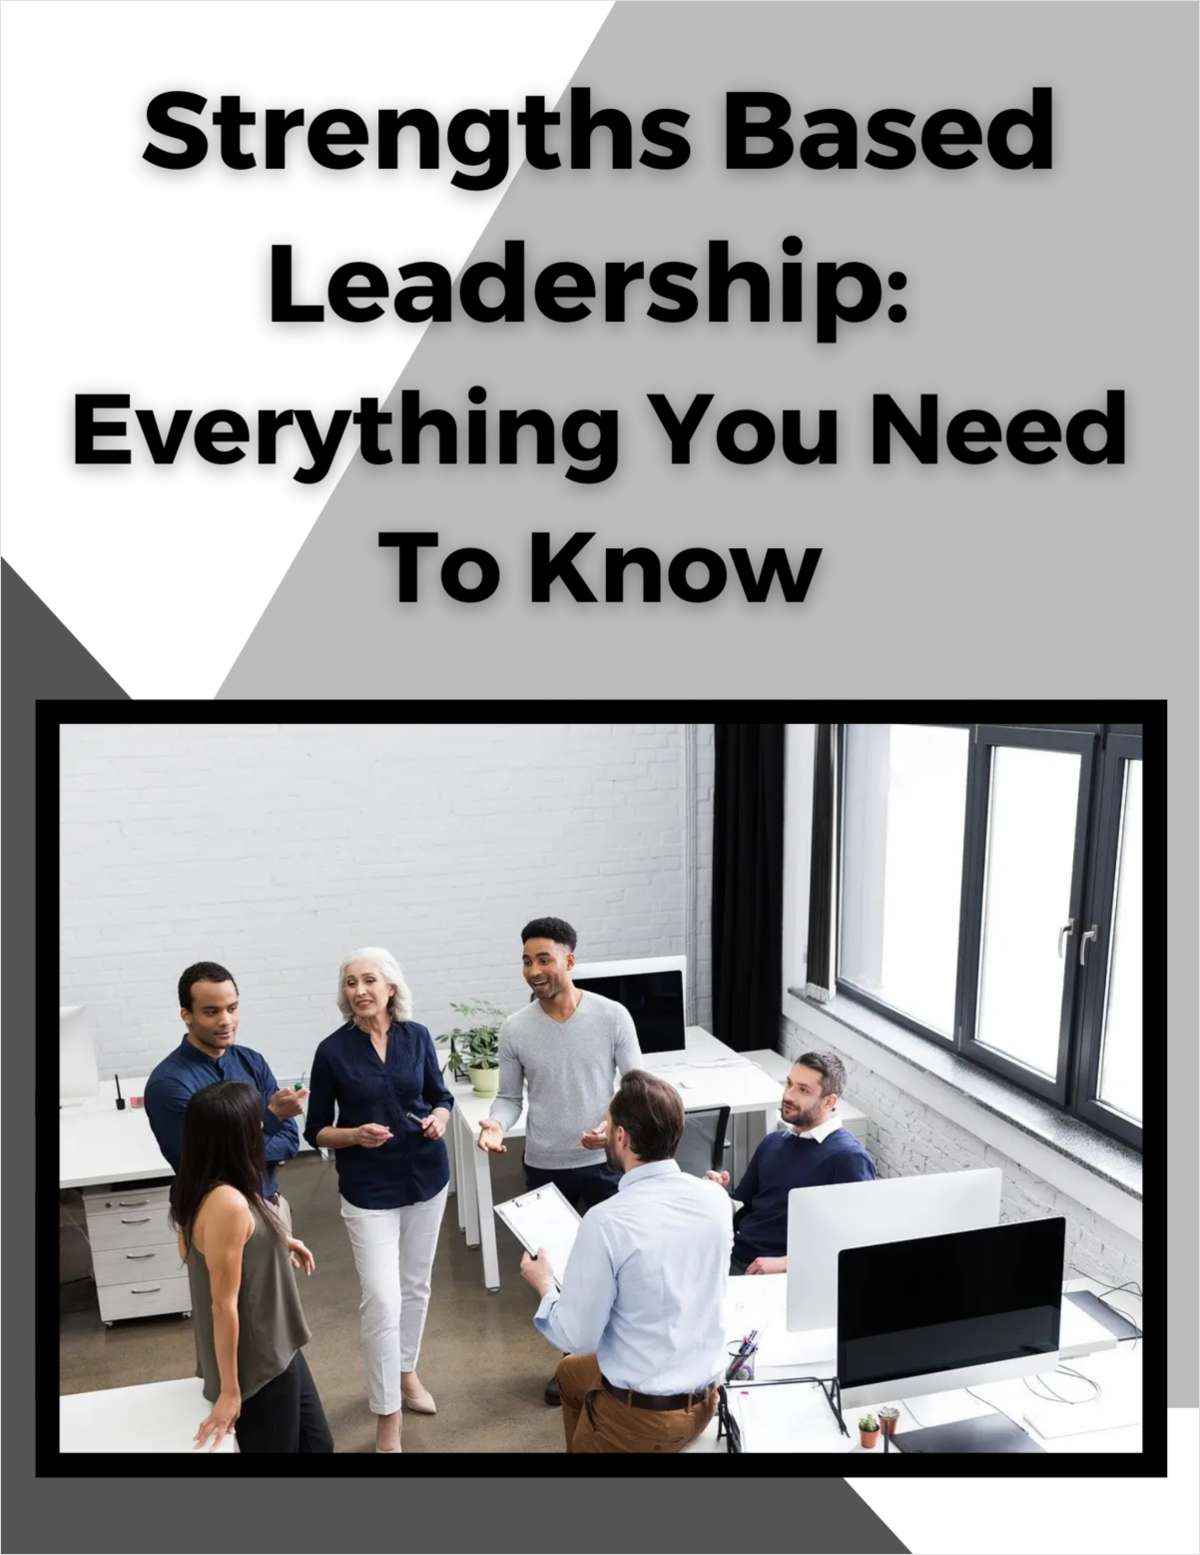 Strengths Based Leadership: Everything You Need To Know